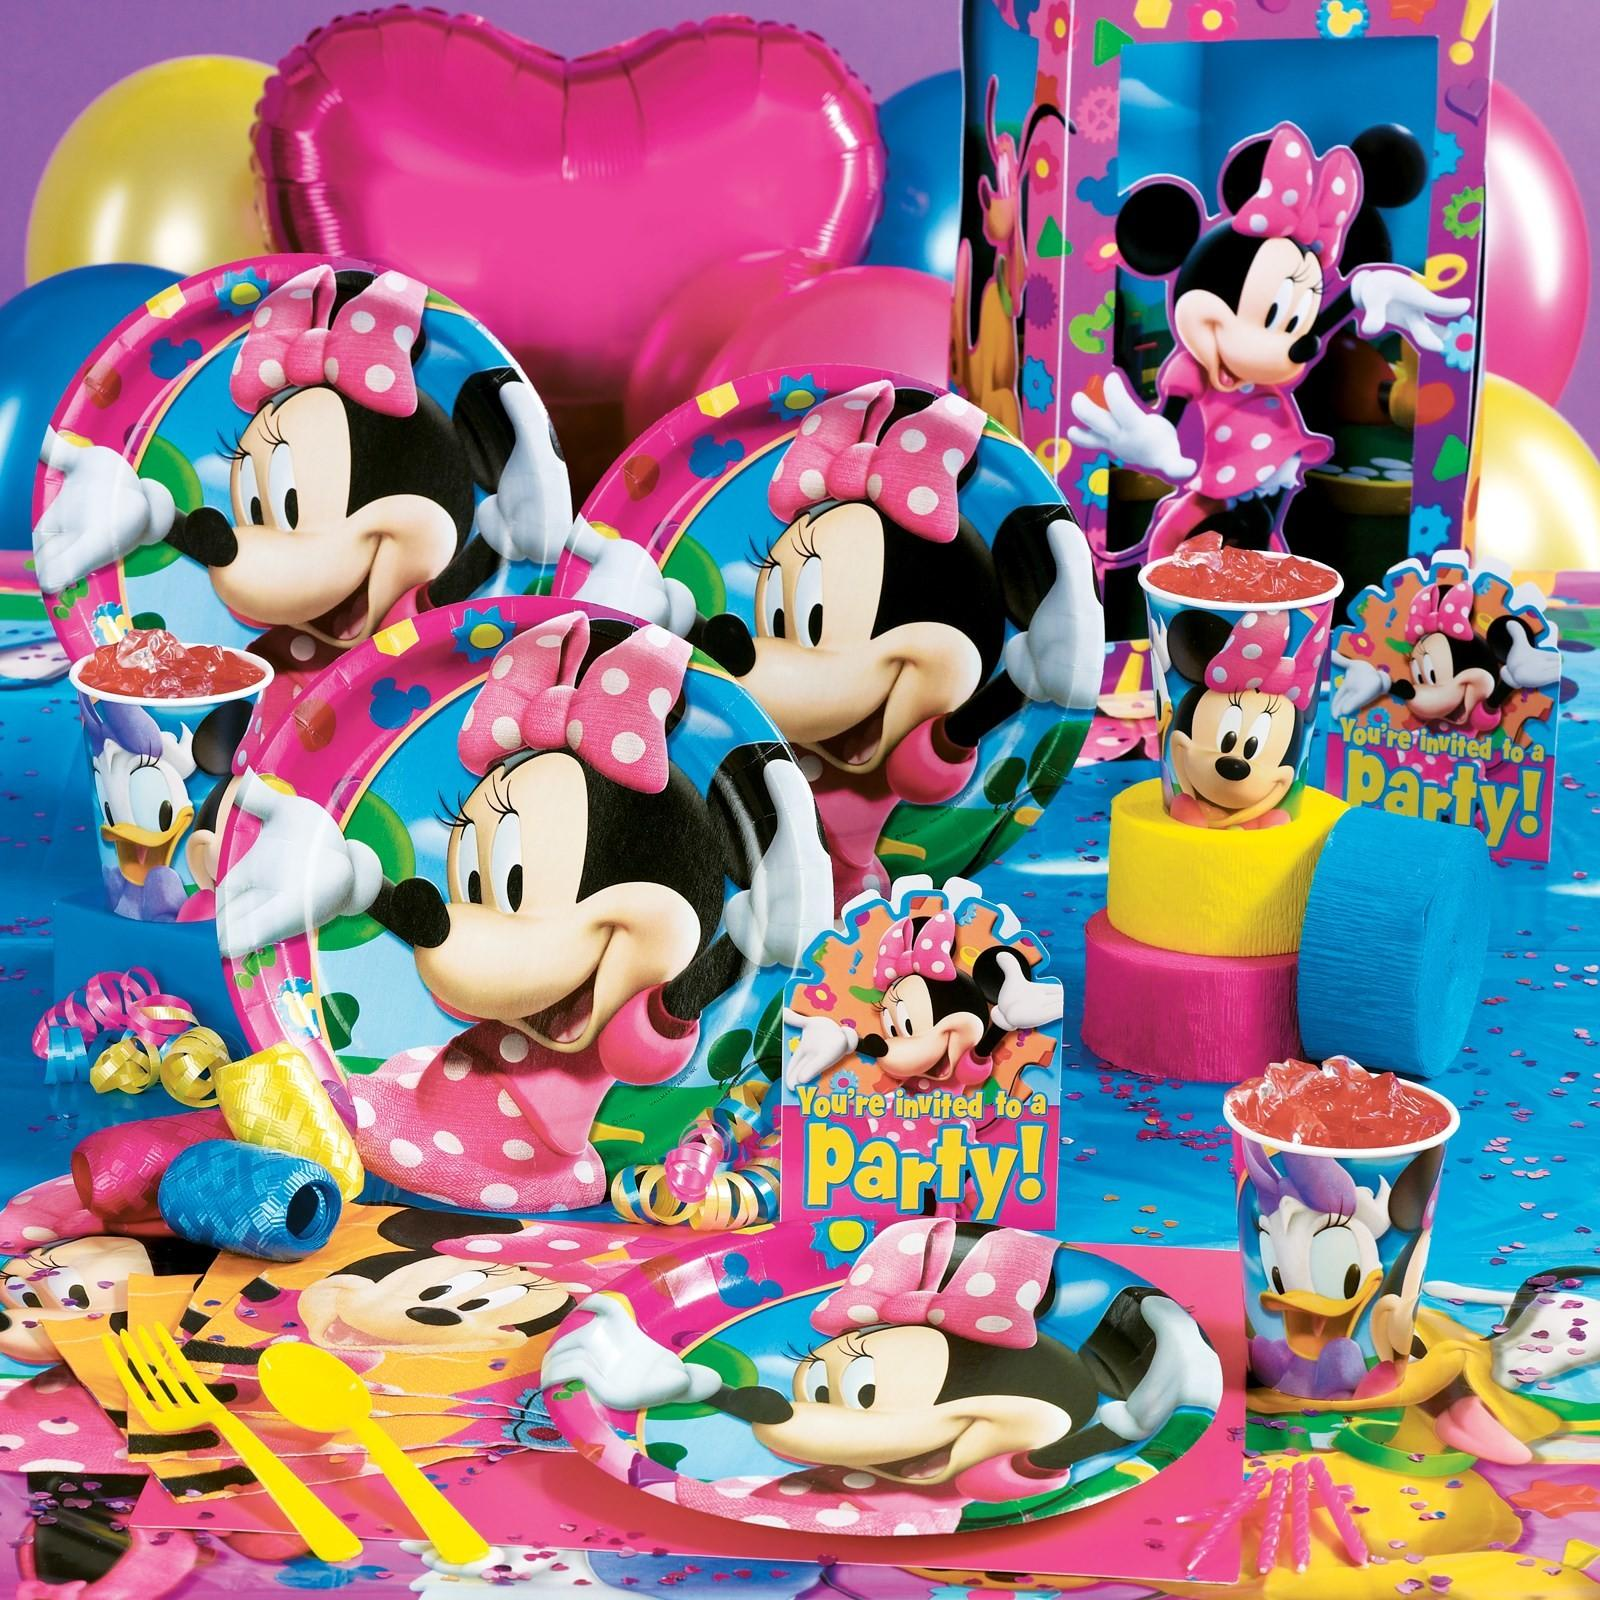 Picnic Party Minnie Mouse Supplies